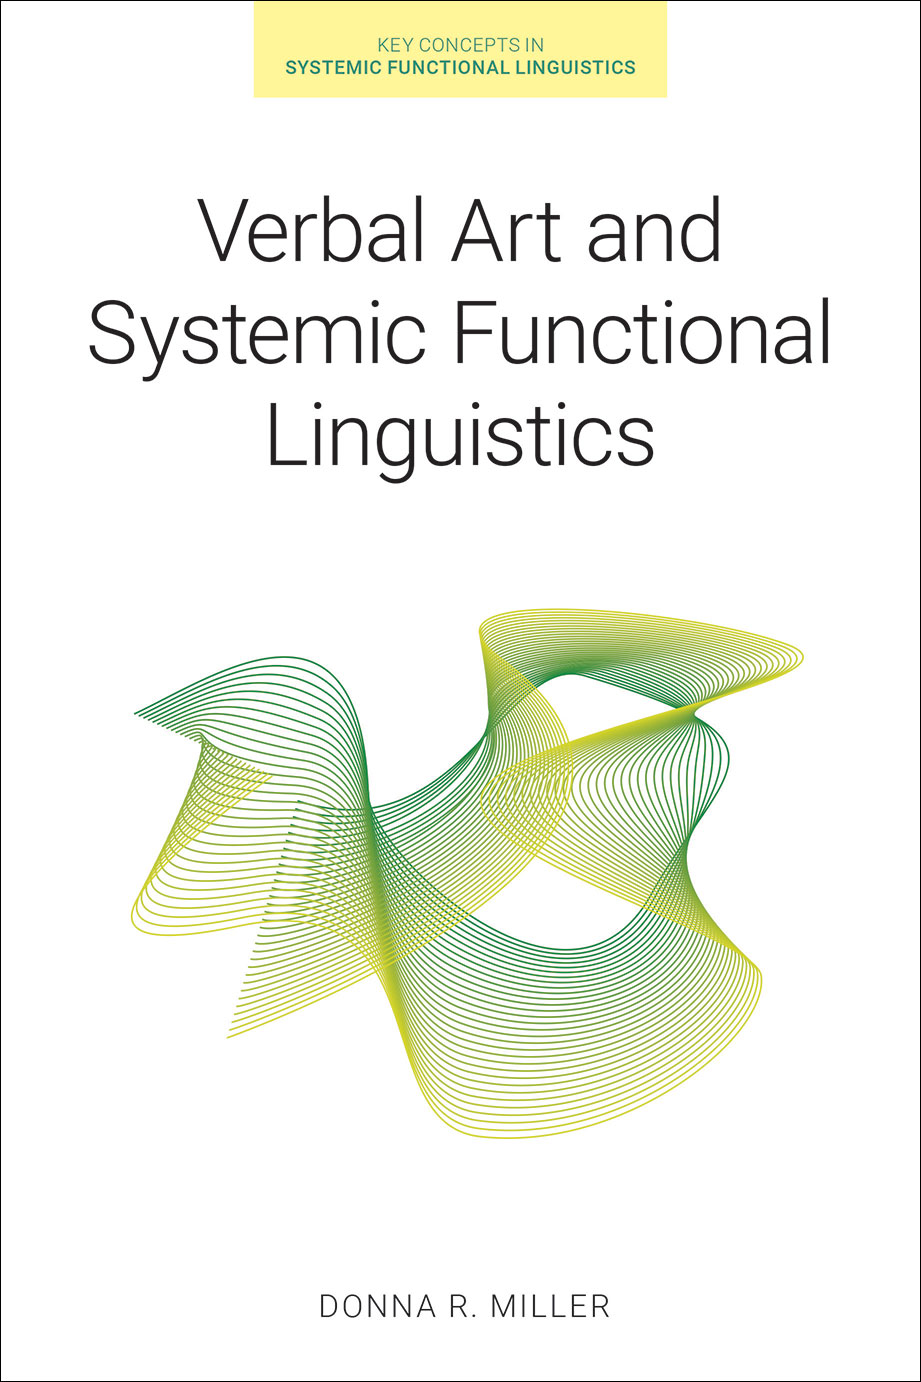 Verbal Art and Systemic Functional Linguistics